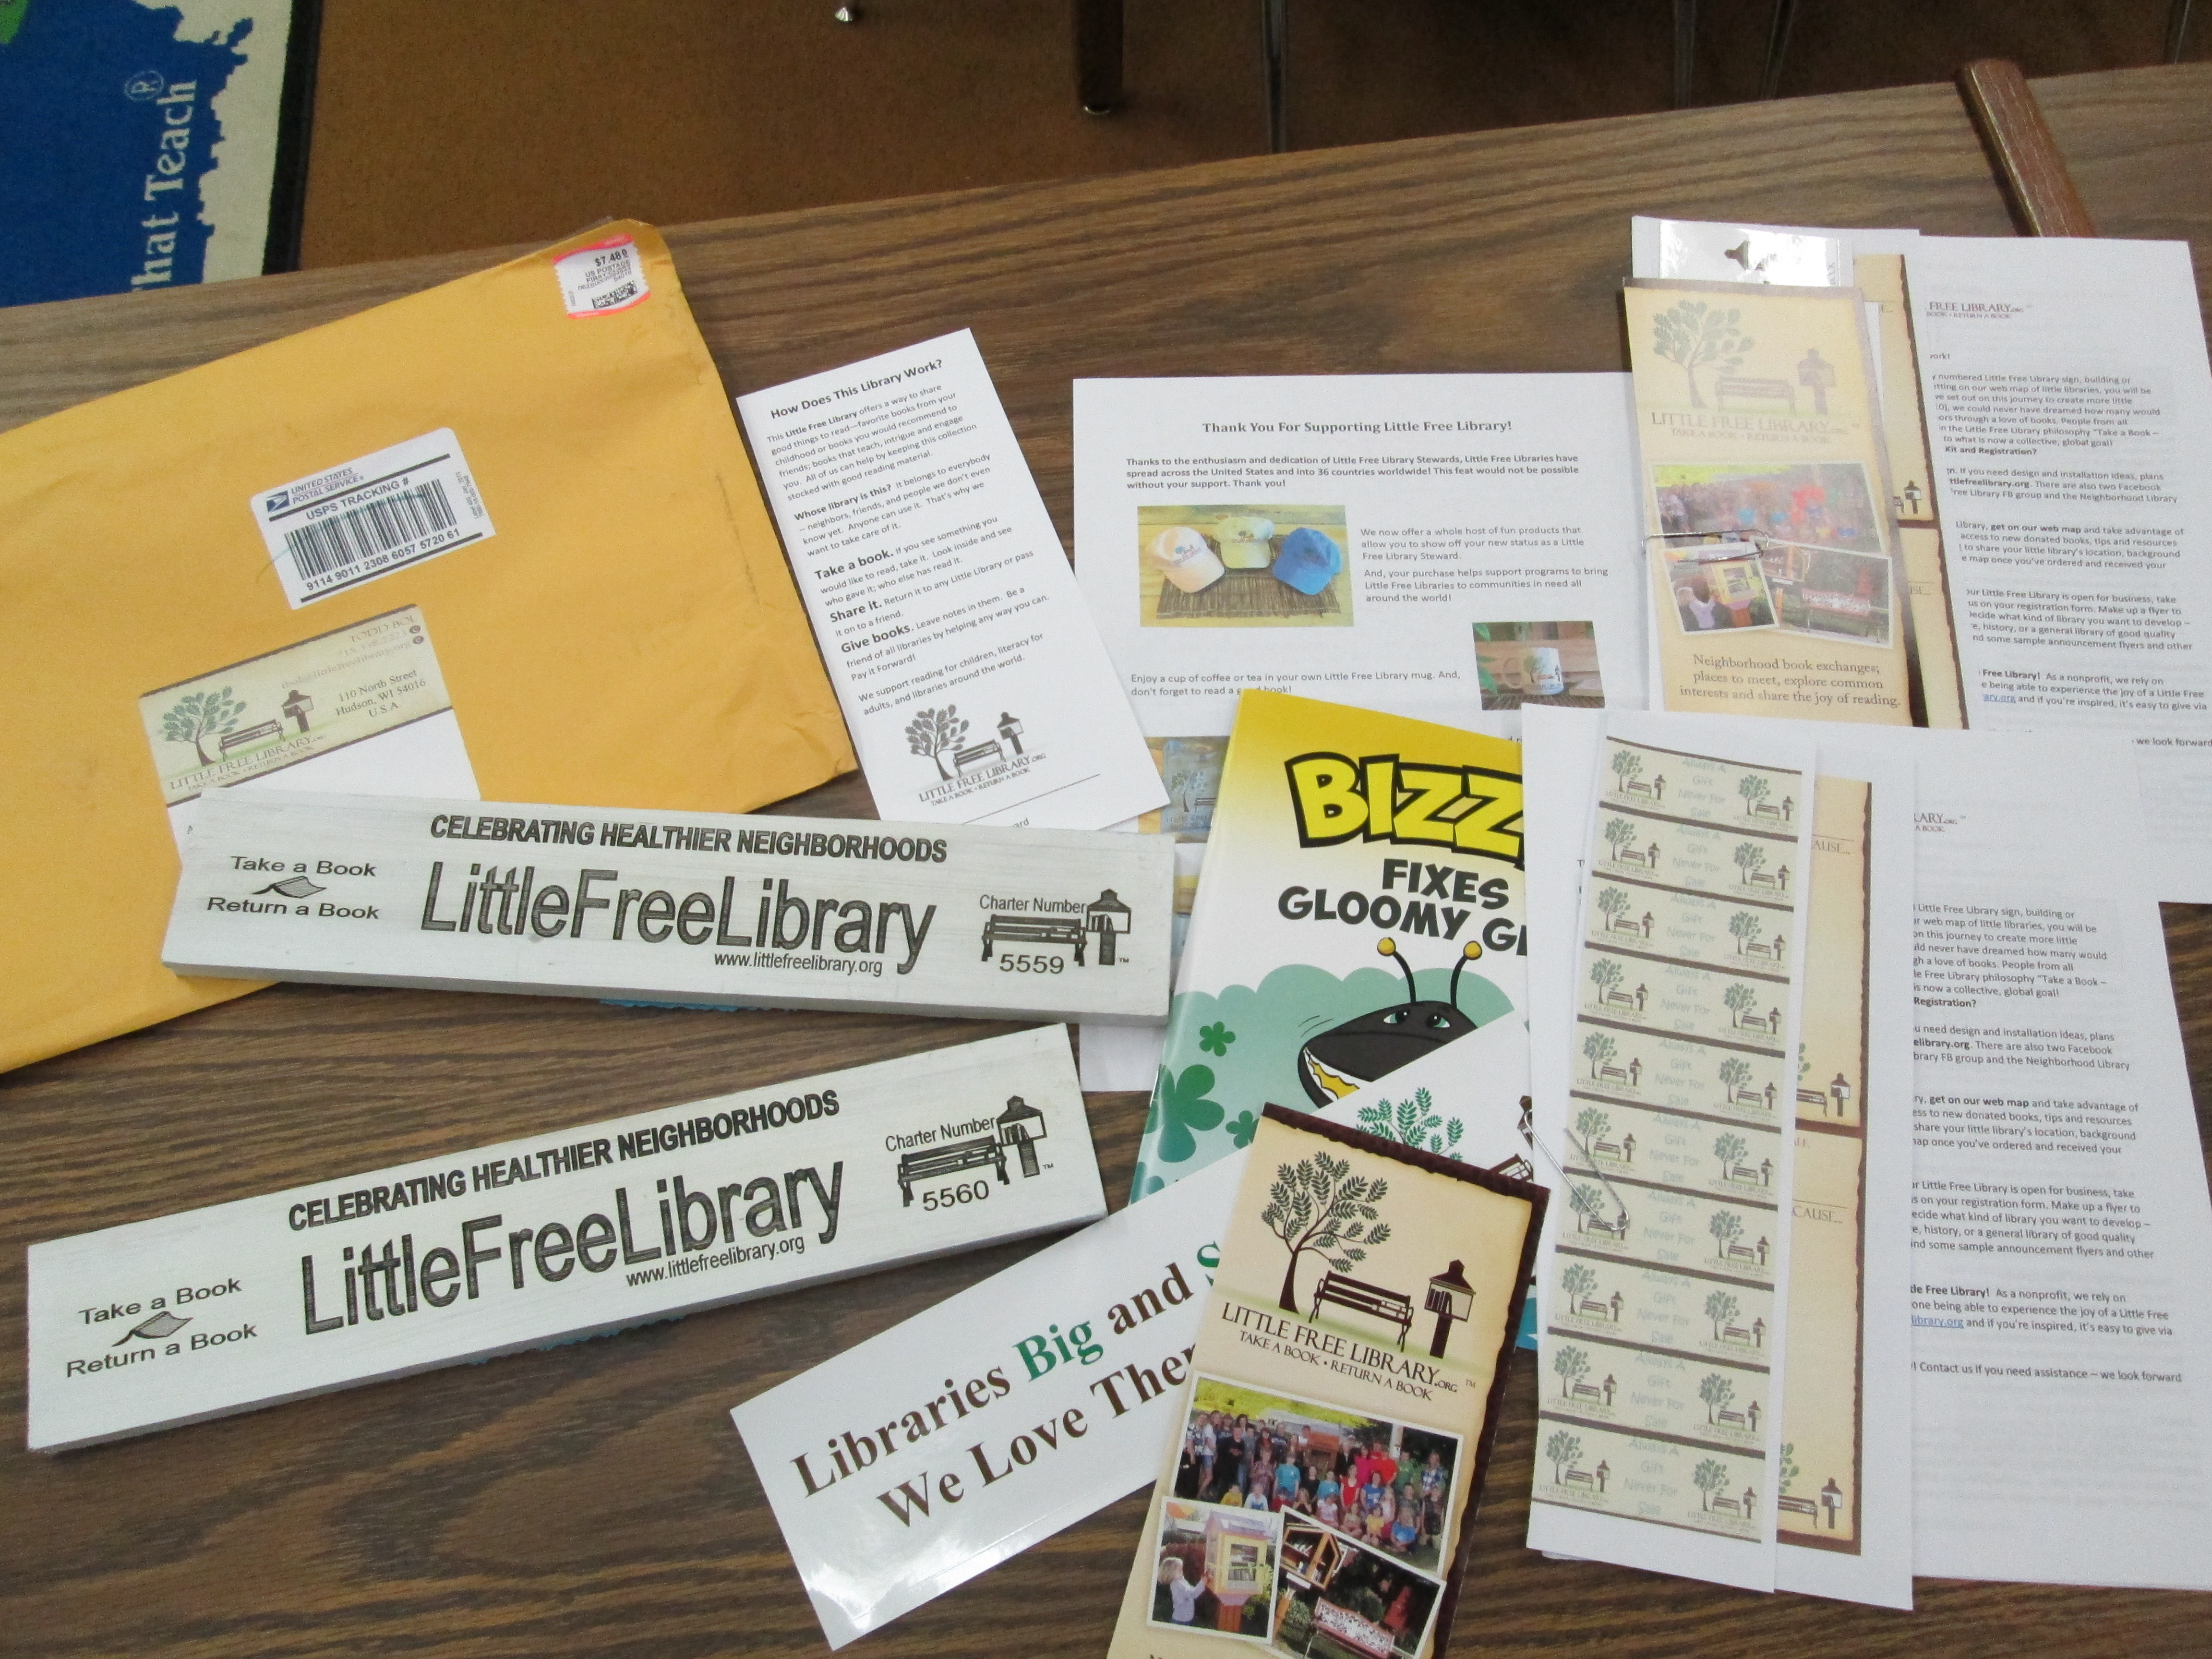 Bumper sticker design ideas - Labels Bumper Stickers Ideas And More Were In Our Package From Little Free